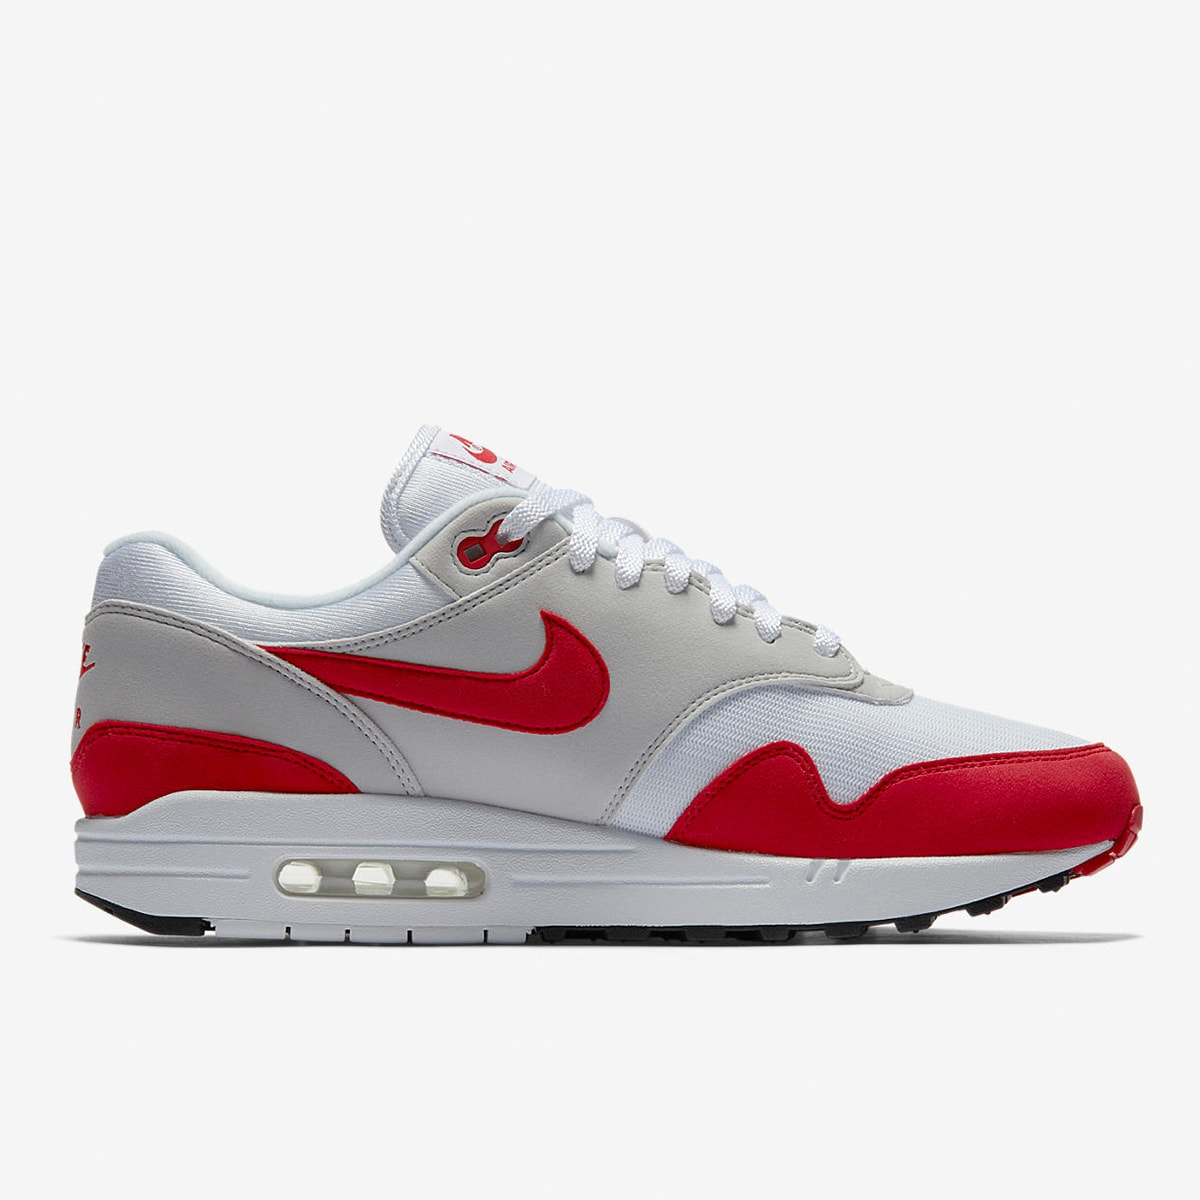 hot sale online 744dc 2a1ea Nike Air Max 1 Anniversary White   University Red   END.